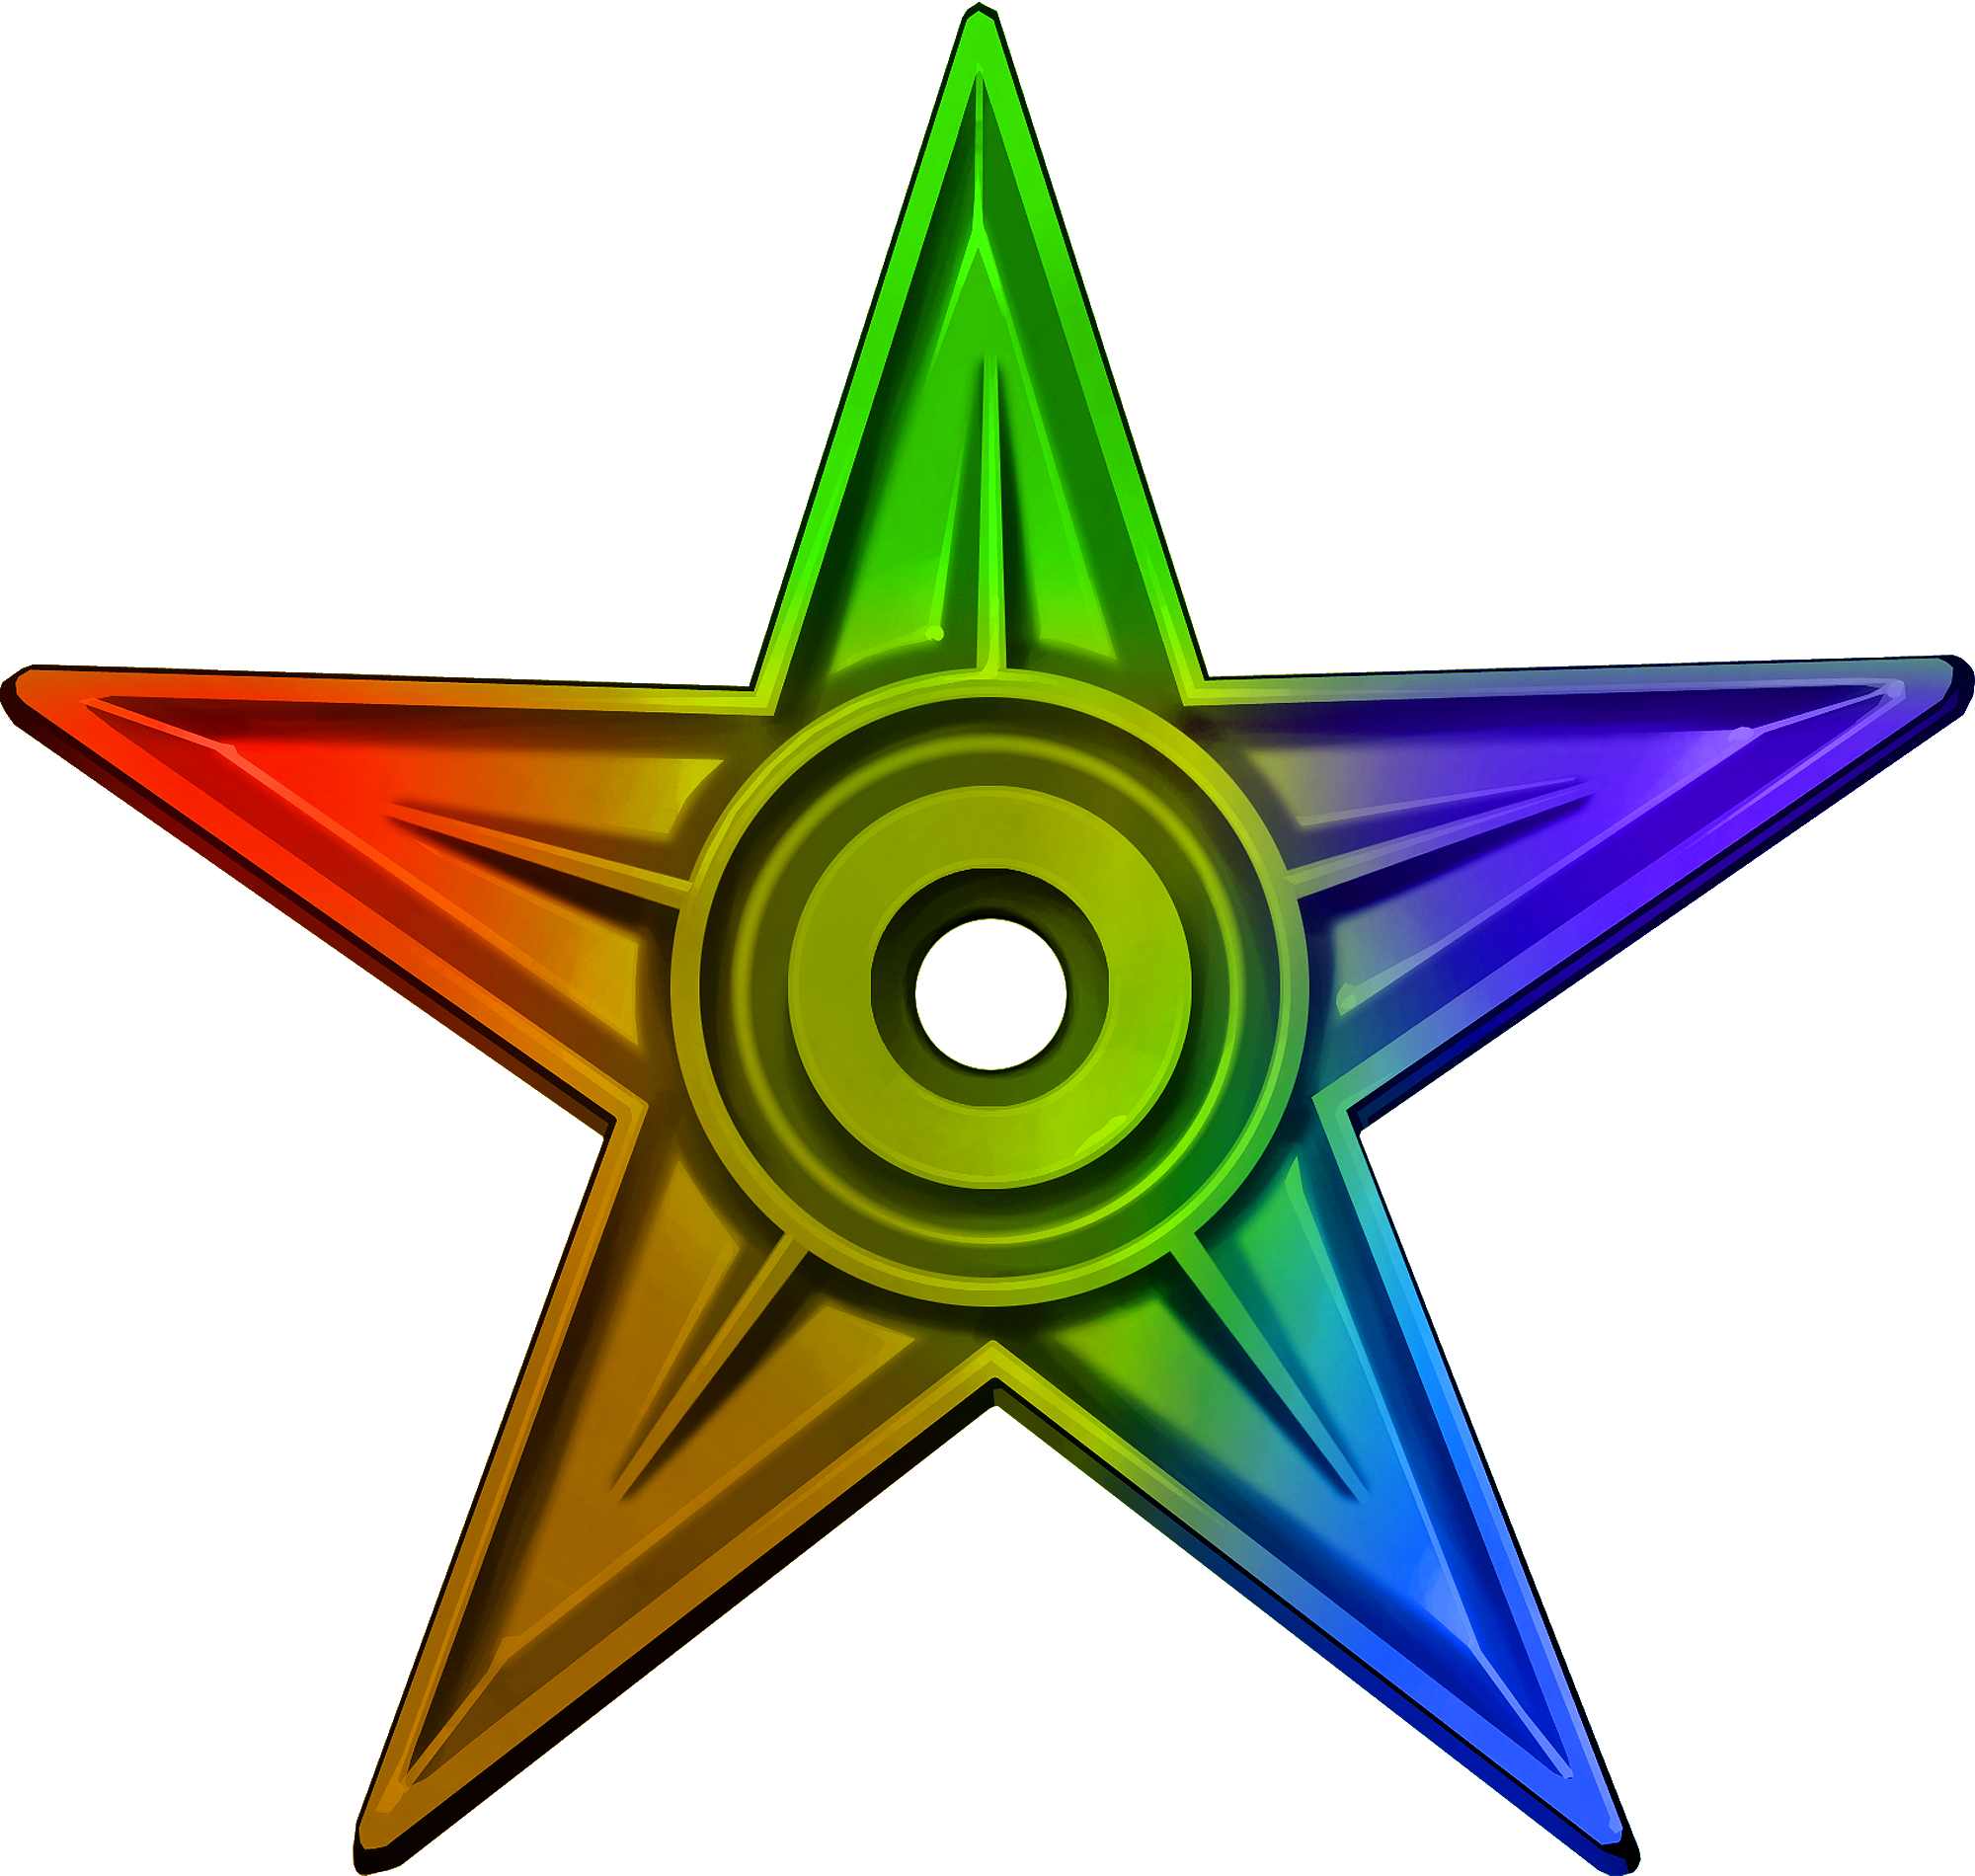 https://upload.wikimedia.org/wikipedia/commons/thumb/3/3f/Graphic_Designer_Barnstar_Hires.png/120px-Graphic_Designer_Barnstar_Hires.png